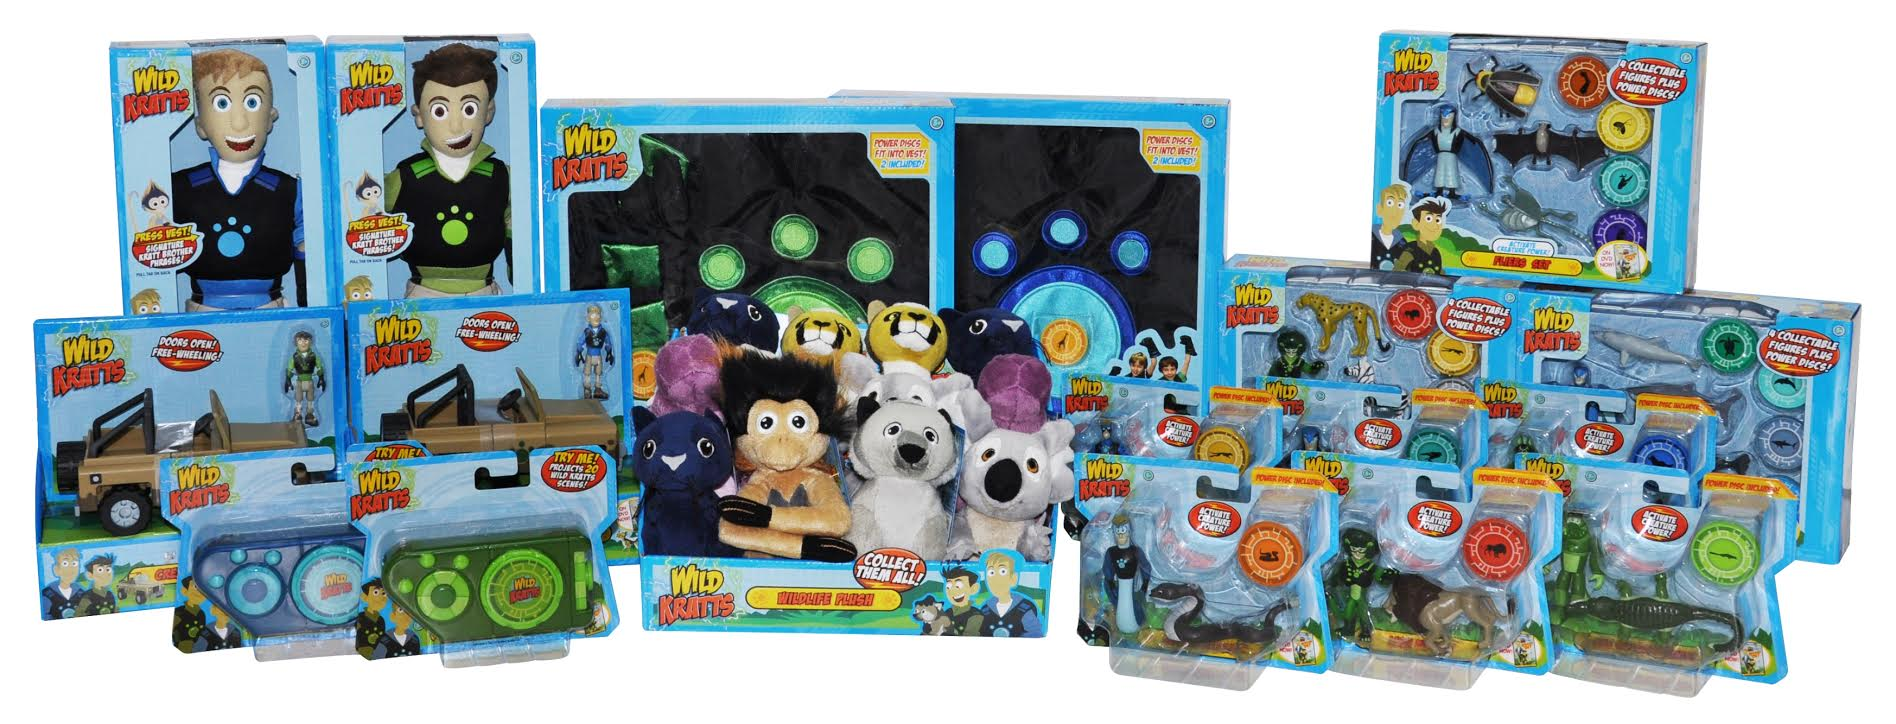 Wild Kratts Discover Toy Shelves With New Line 187 Kidscreen